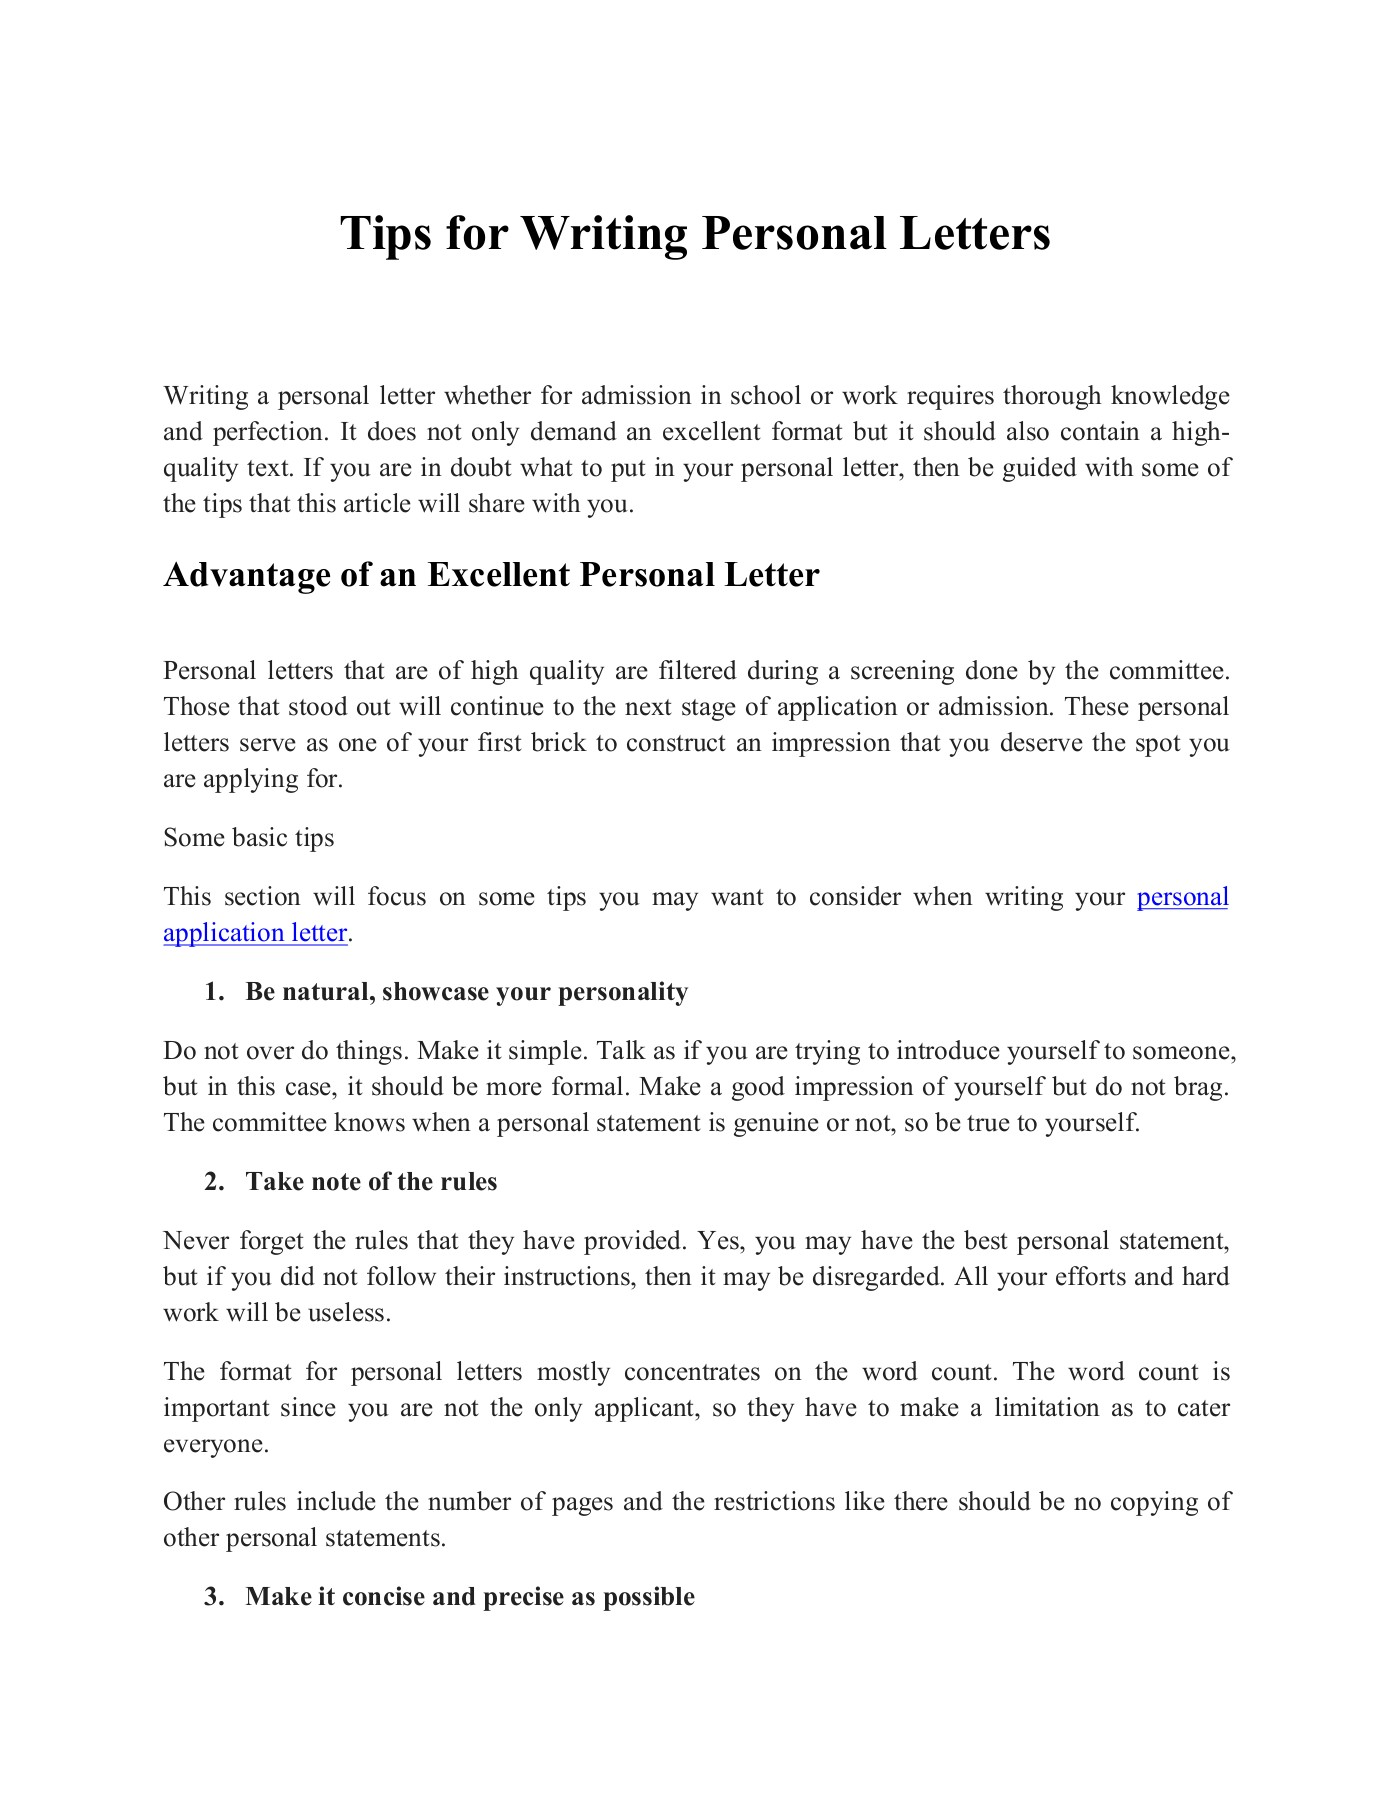 Writing A Personal Letter from online.anyflip.com